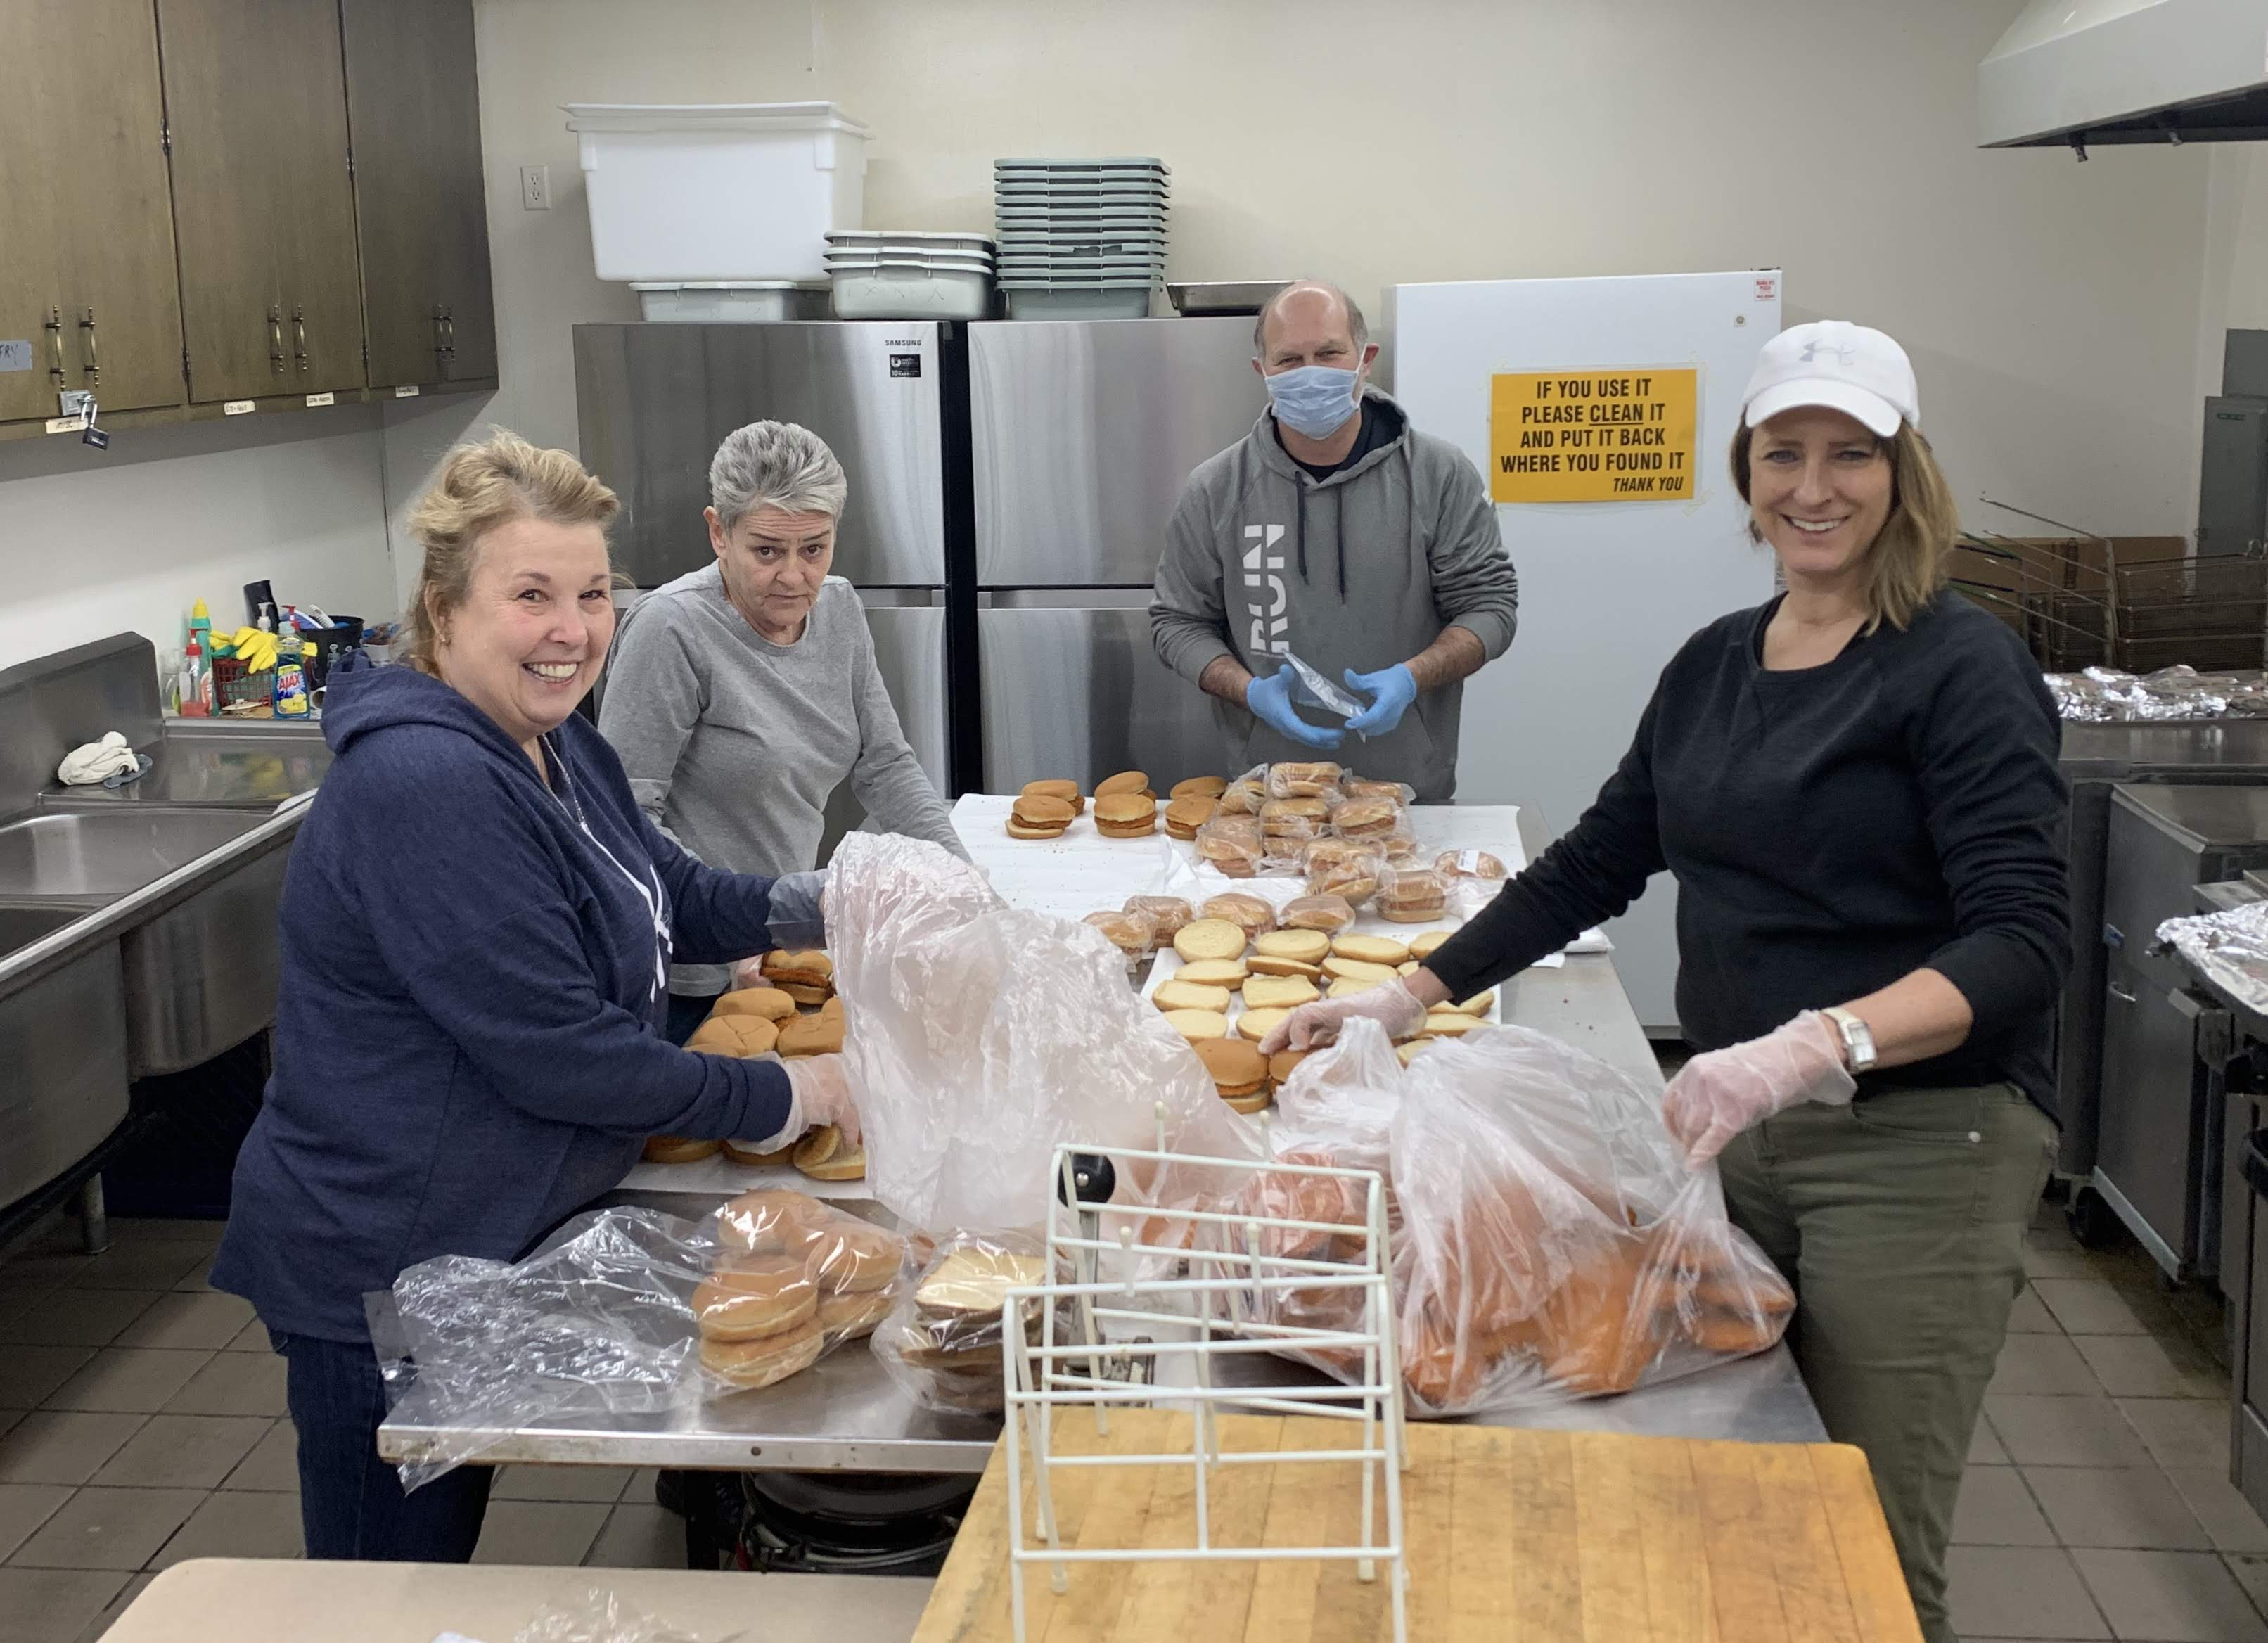 LC Food Service staff members Debbie Caldwell, Ricky Zarowny and DeAnn Alleva along with Mr. Graber, pack lunches at the VFW.